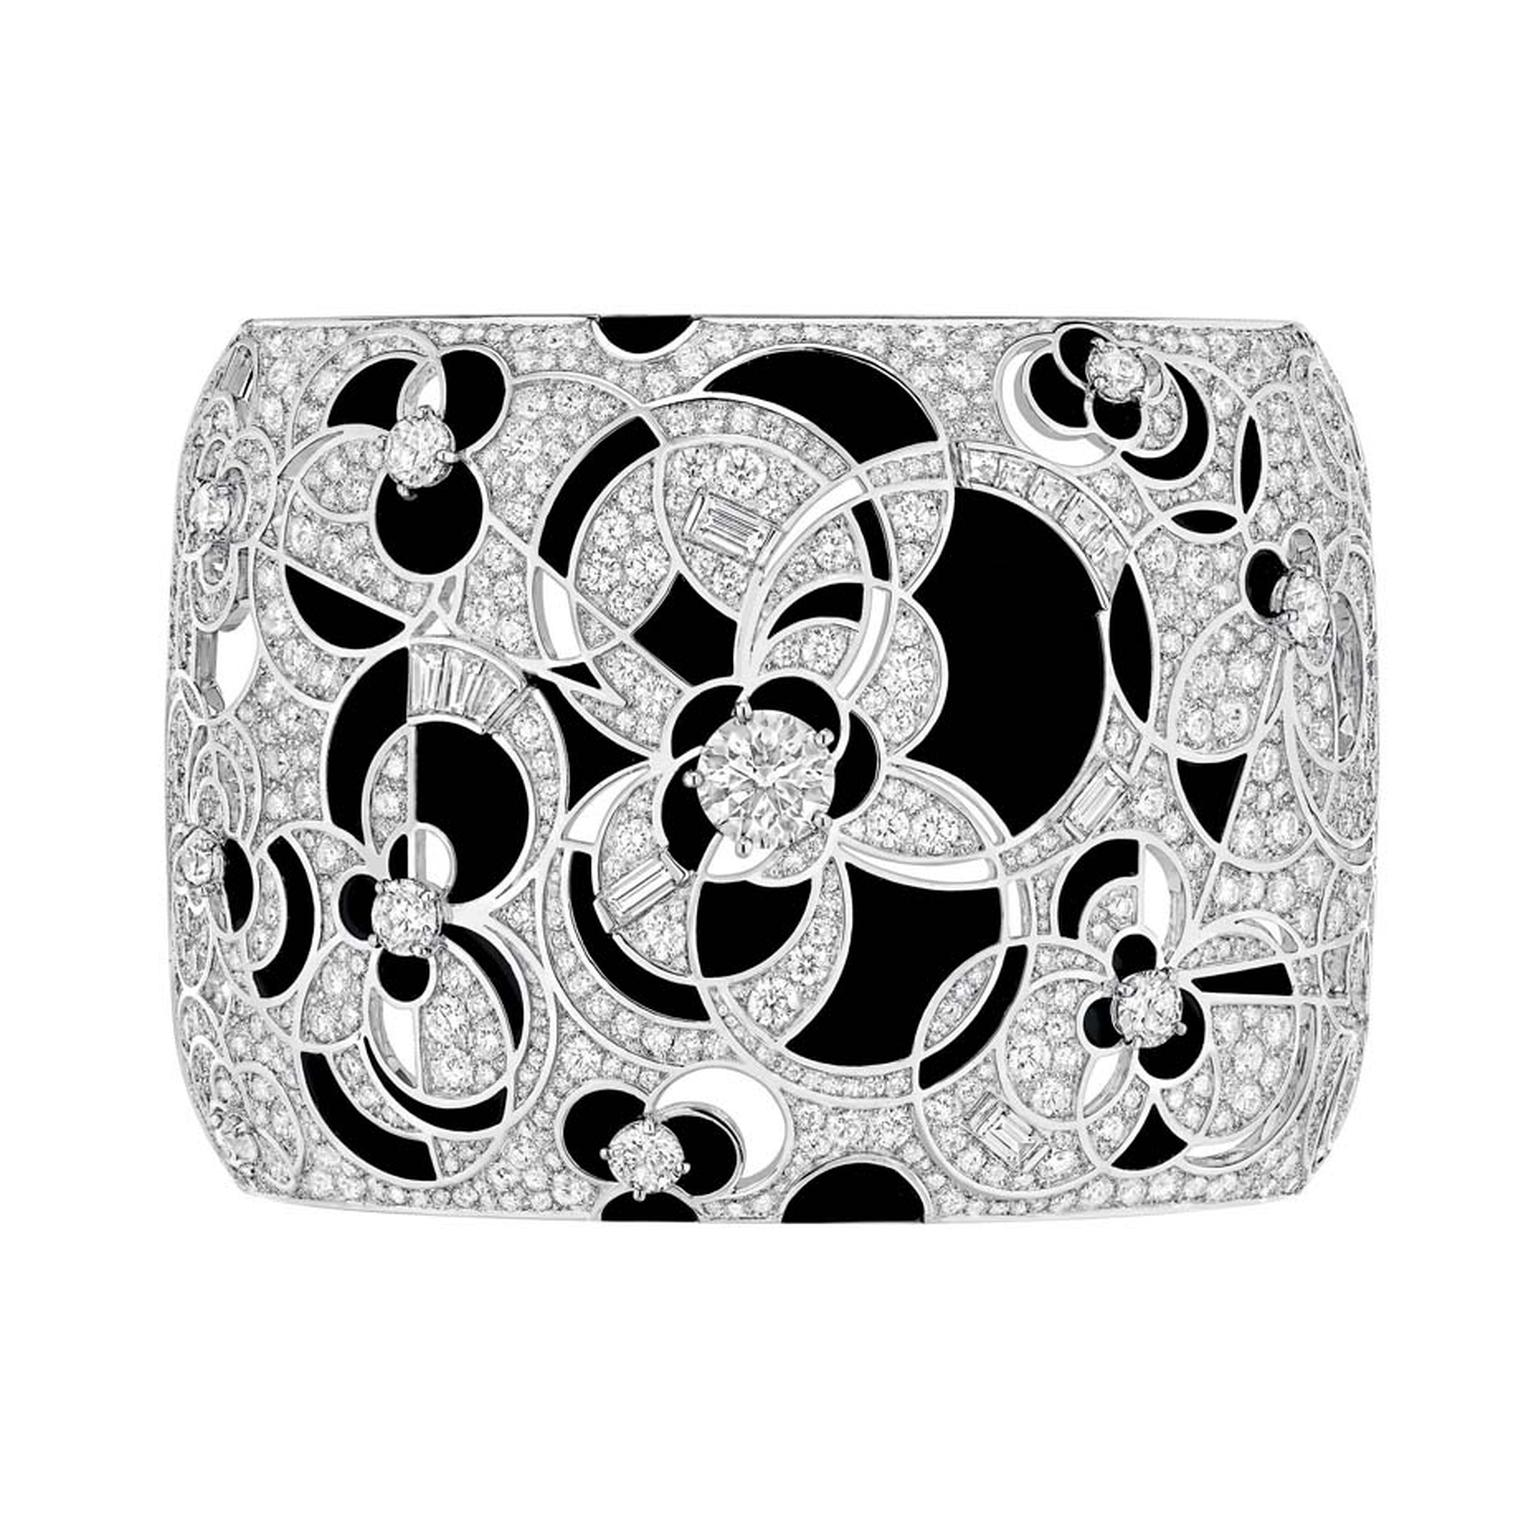 Chanel Midnight cuff featuring black onyx and diamonds.